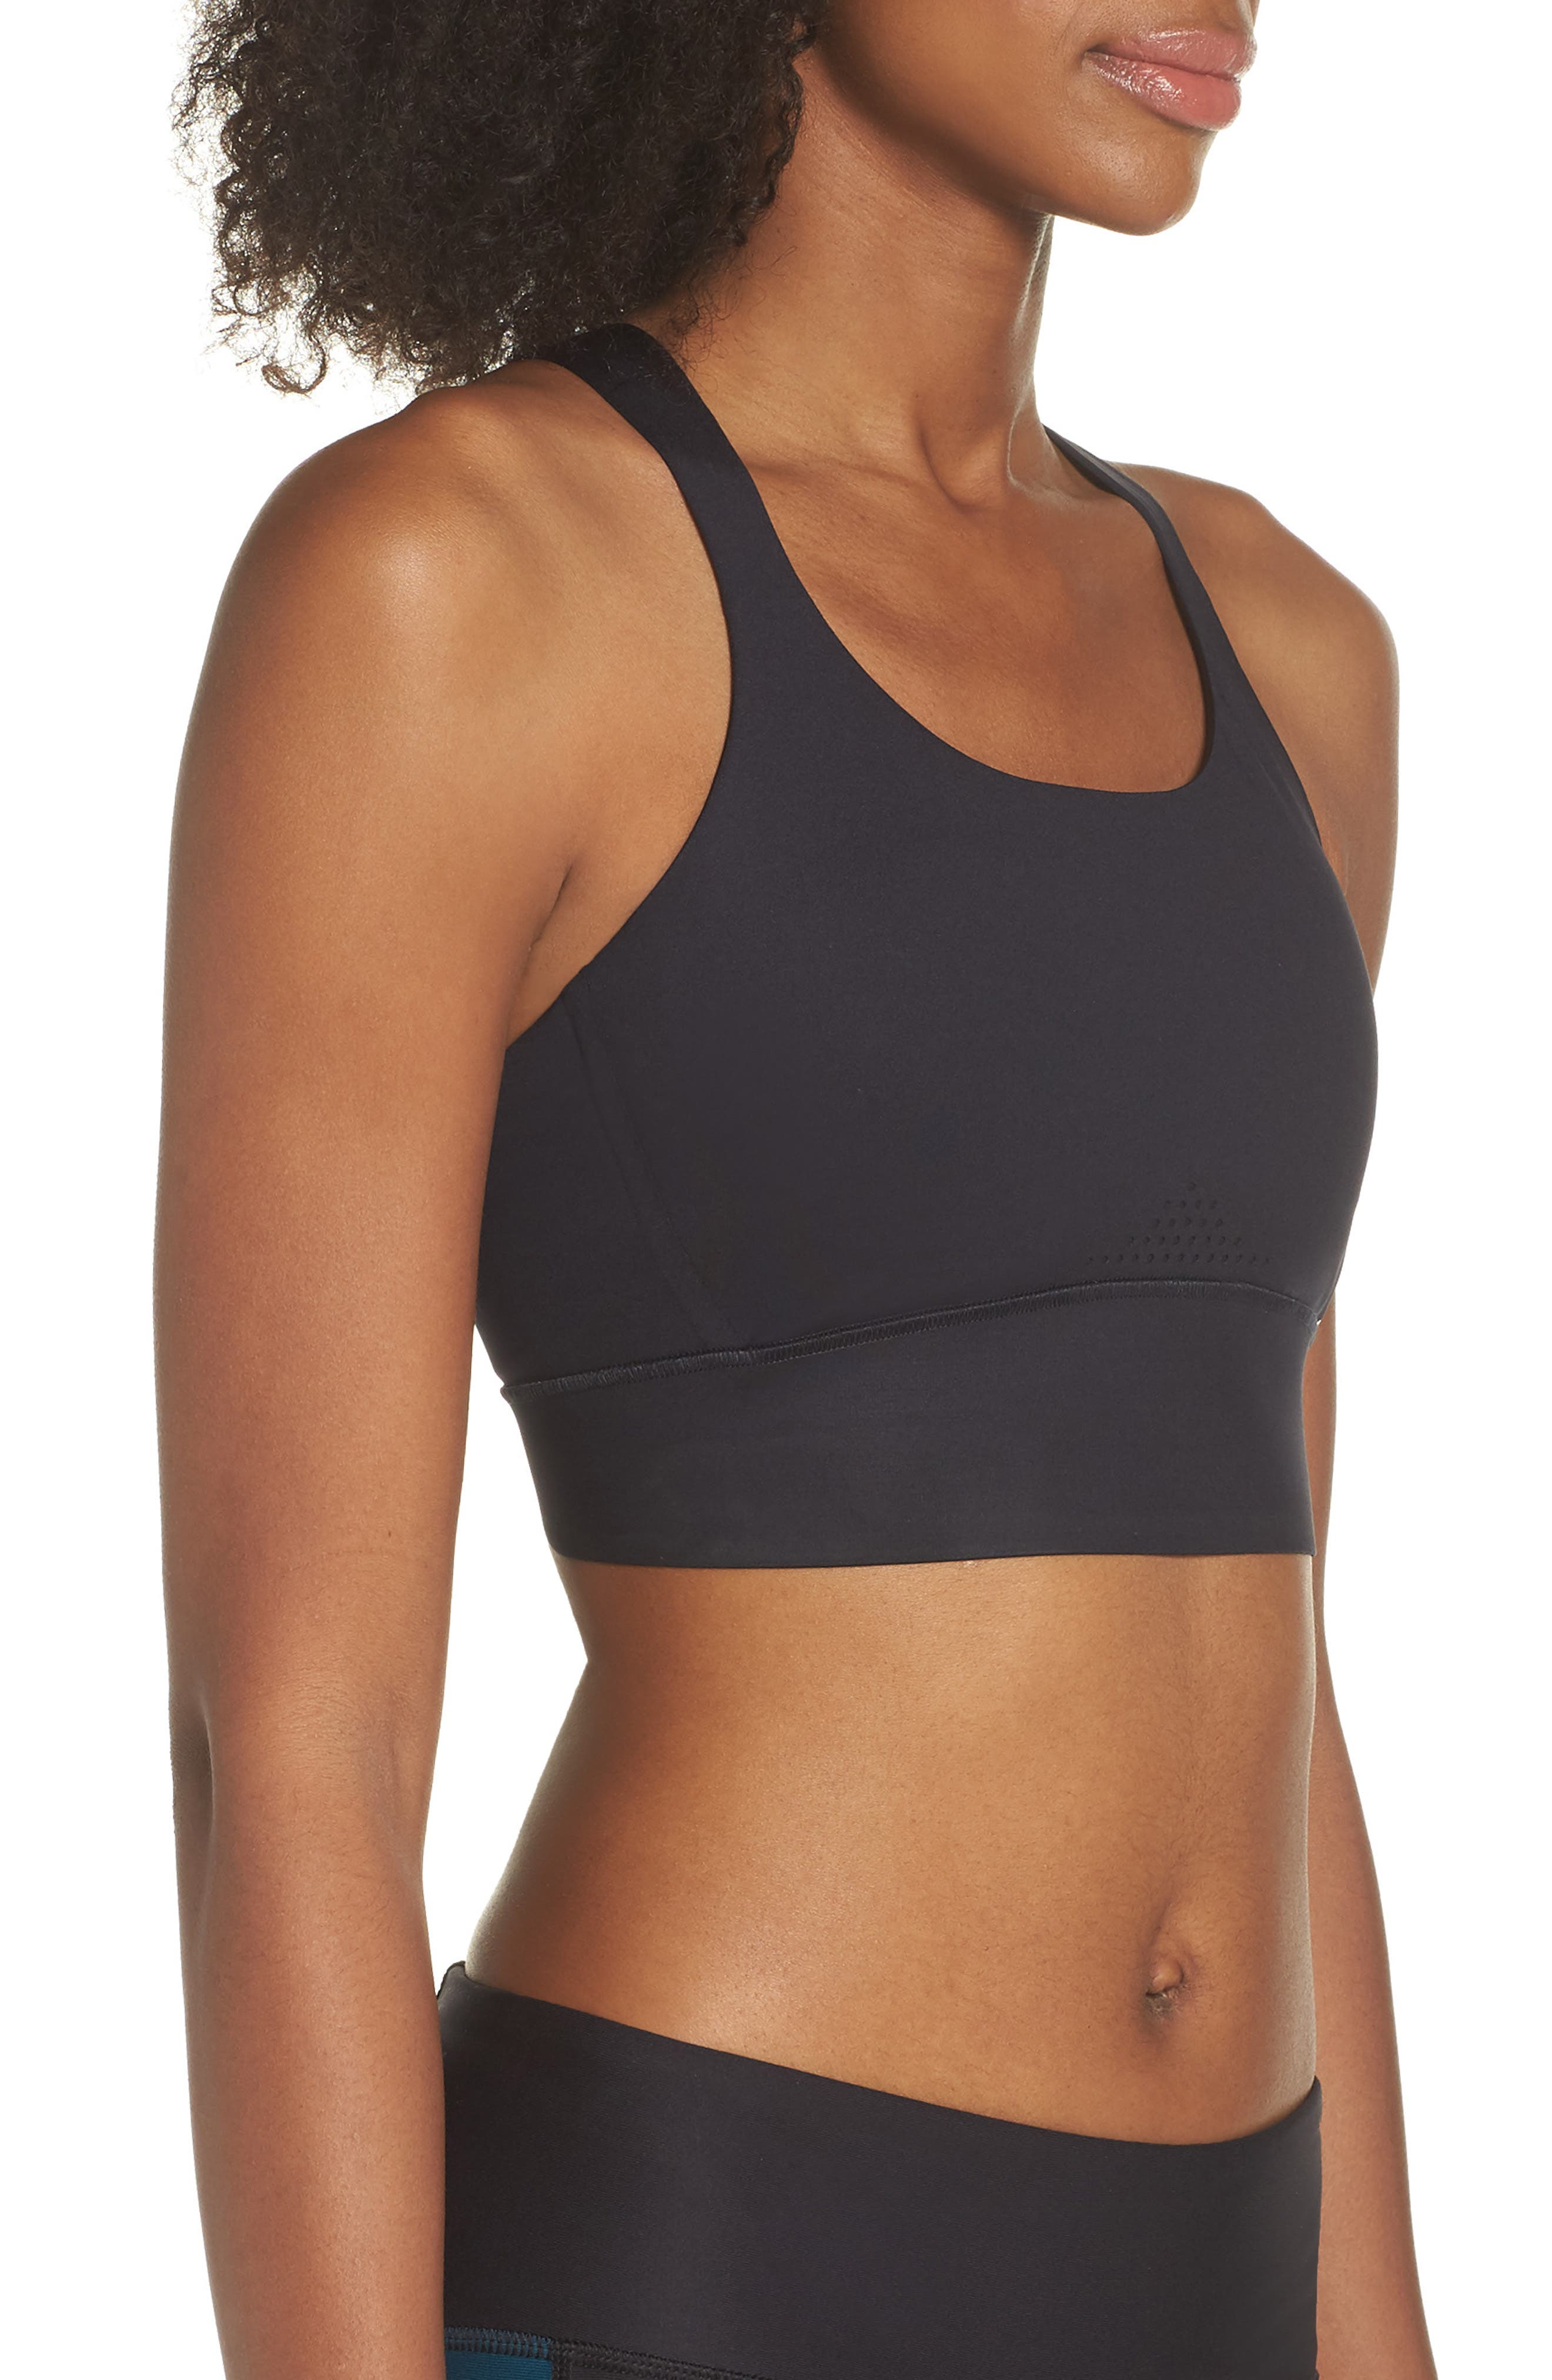 UNDER ARMOUR,                             Breathelux Perforated Sports Bra,                             Alternate thumbnail 4, color,                             001